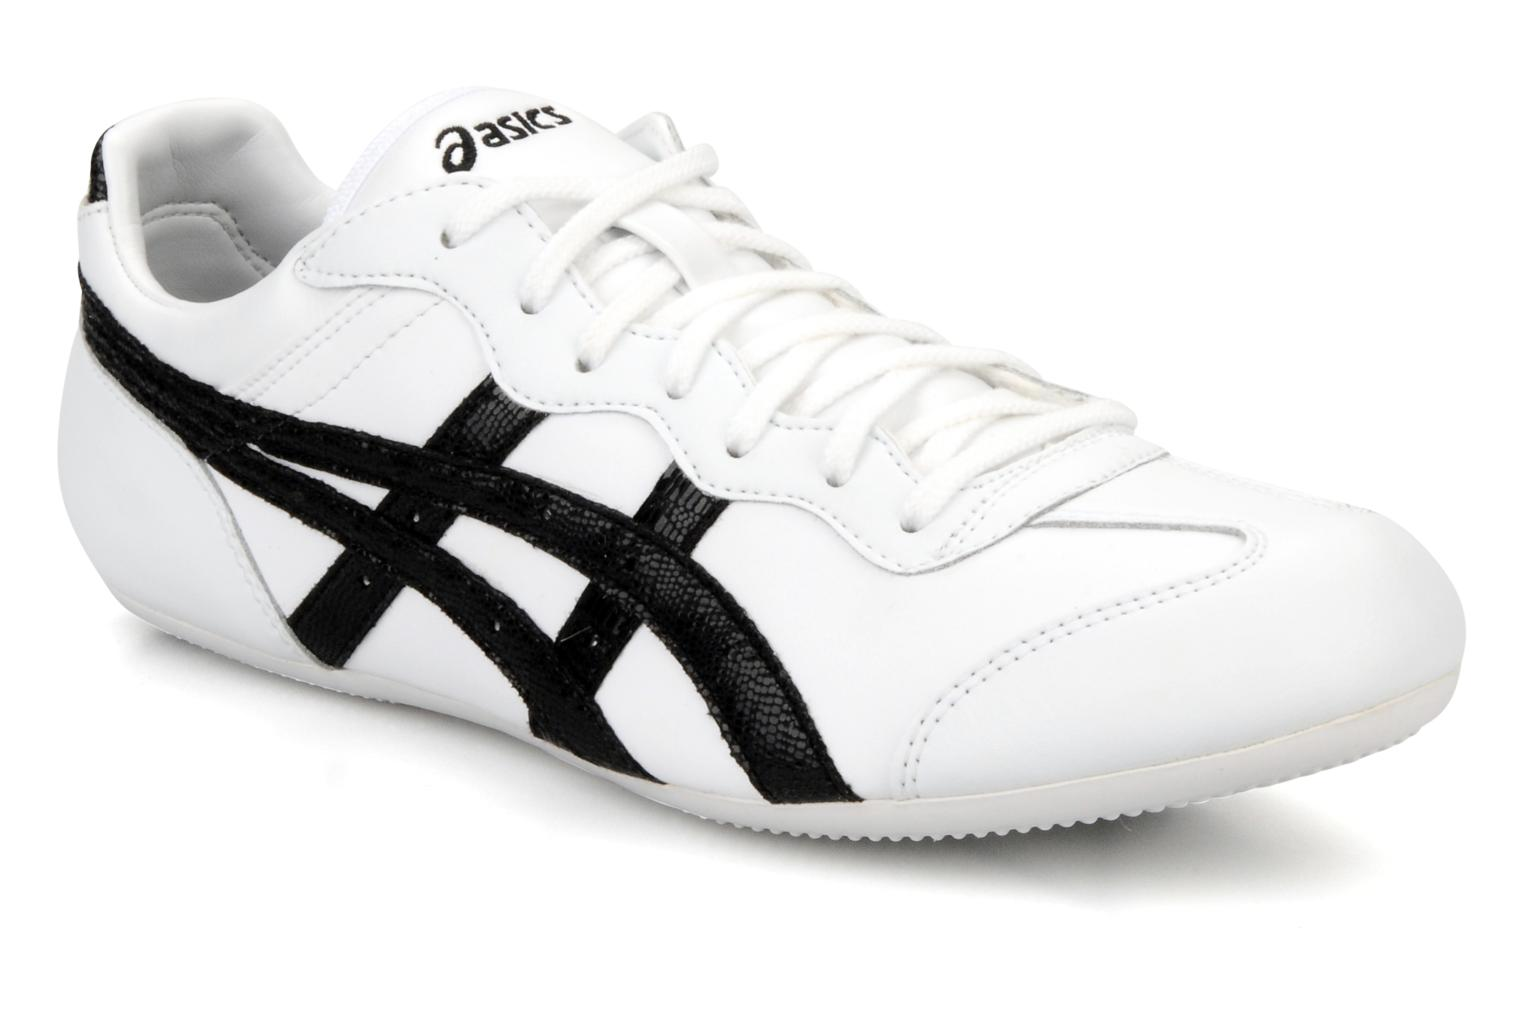 arrebatar madera Objeción  Limited Time Deals·New Deals Everyday asics femme whizzer lo, OFF 74%,Buy!